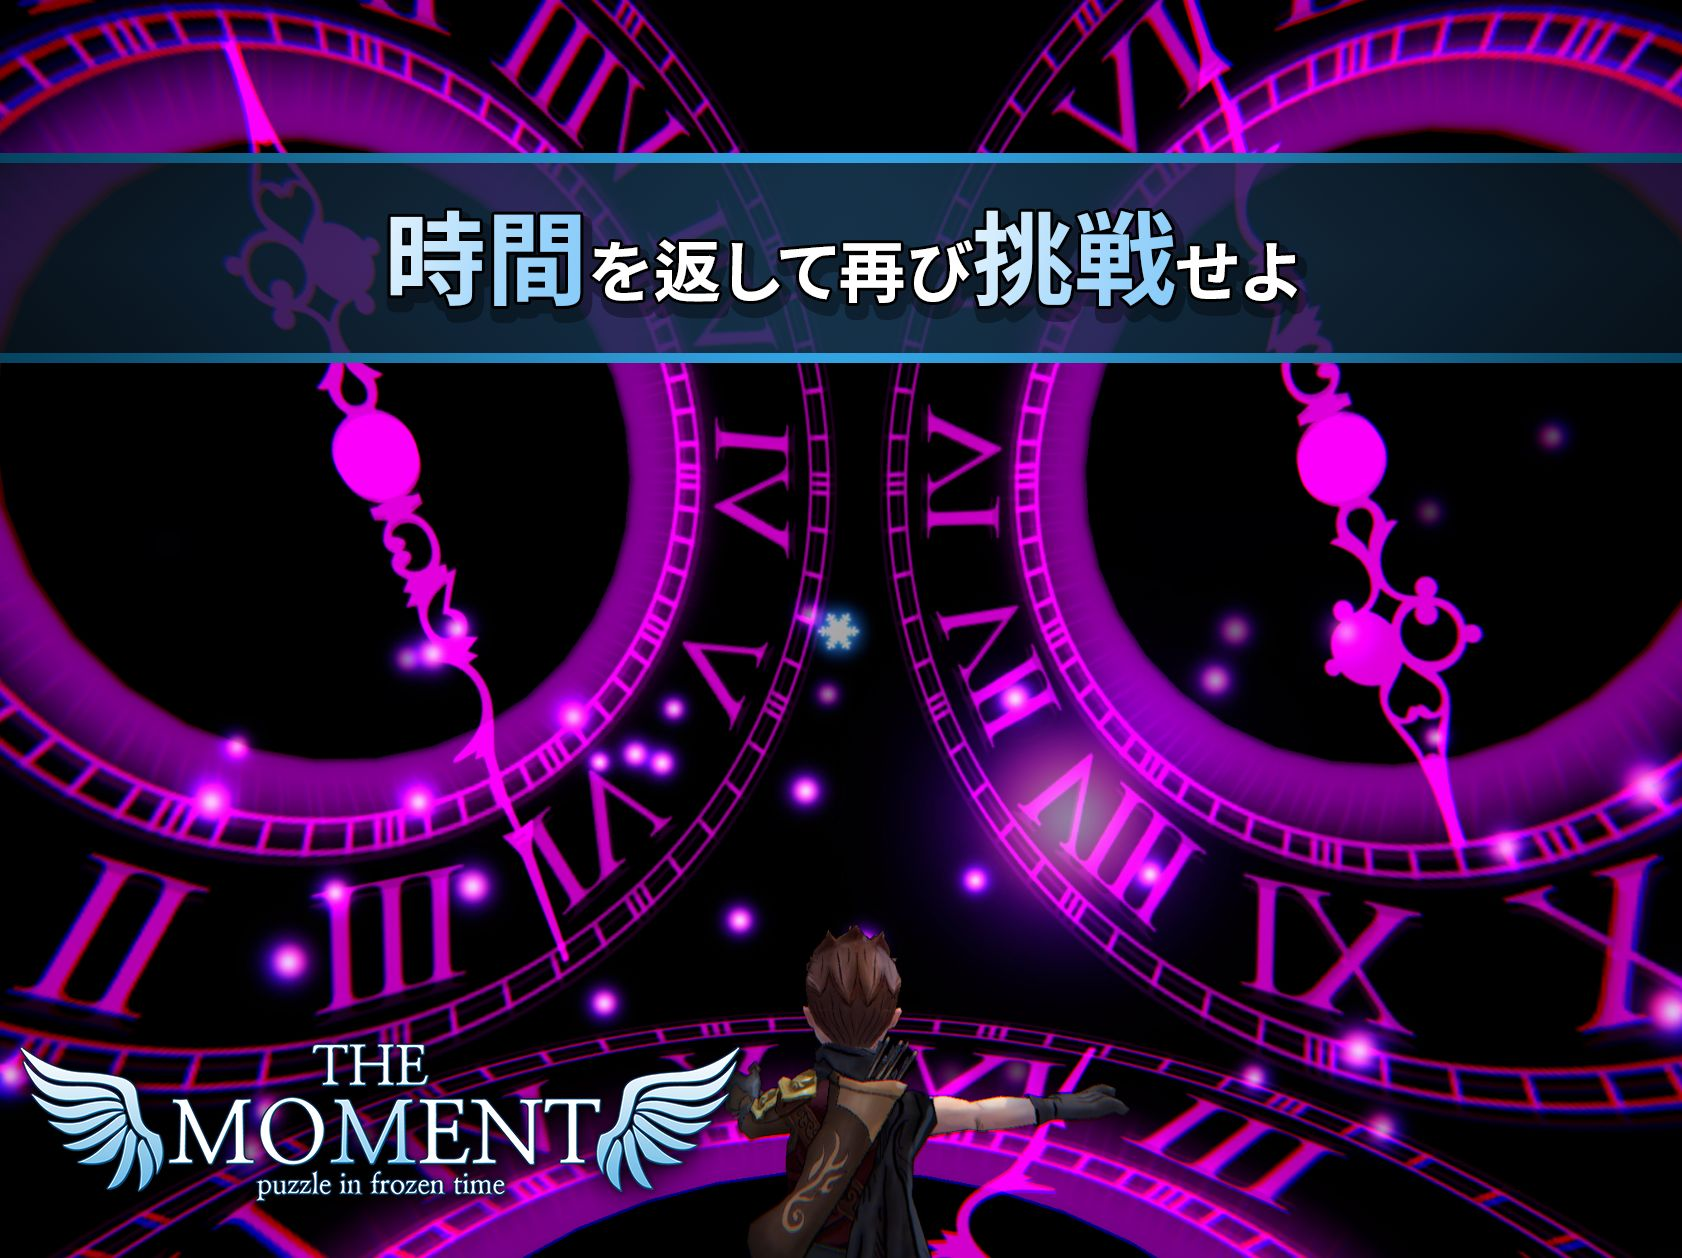 The Moment : the Temple of Time スクリーンショット1